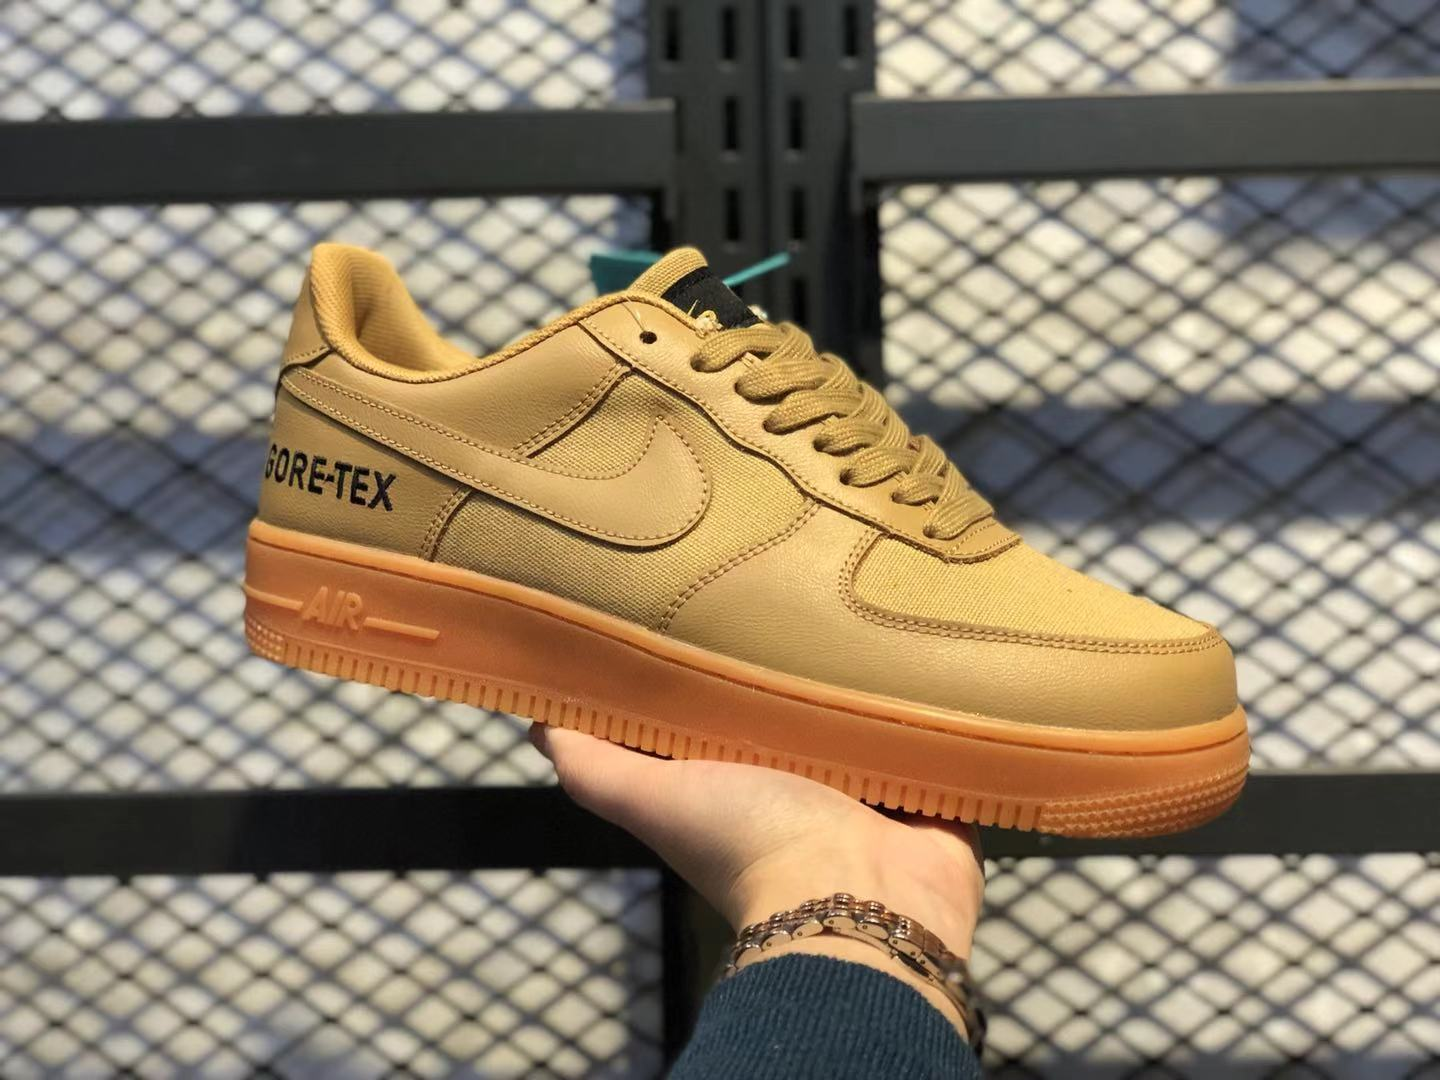 Nike Air Force 1'07 Low Flax-Flax-Outdoor Green Casual Shoes For Online Sale